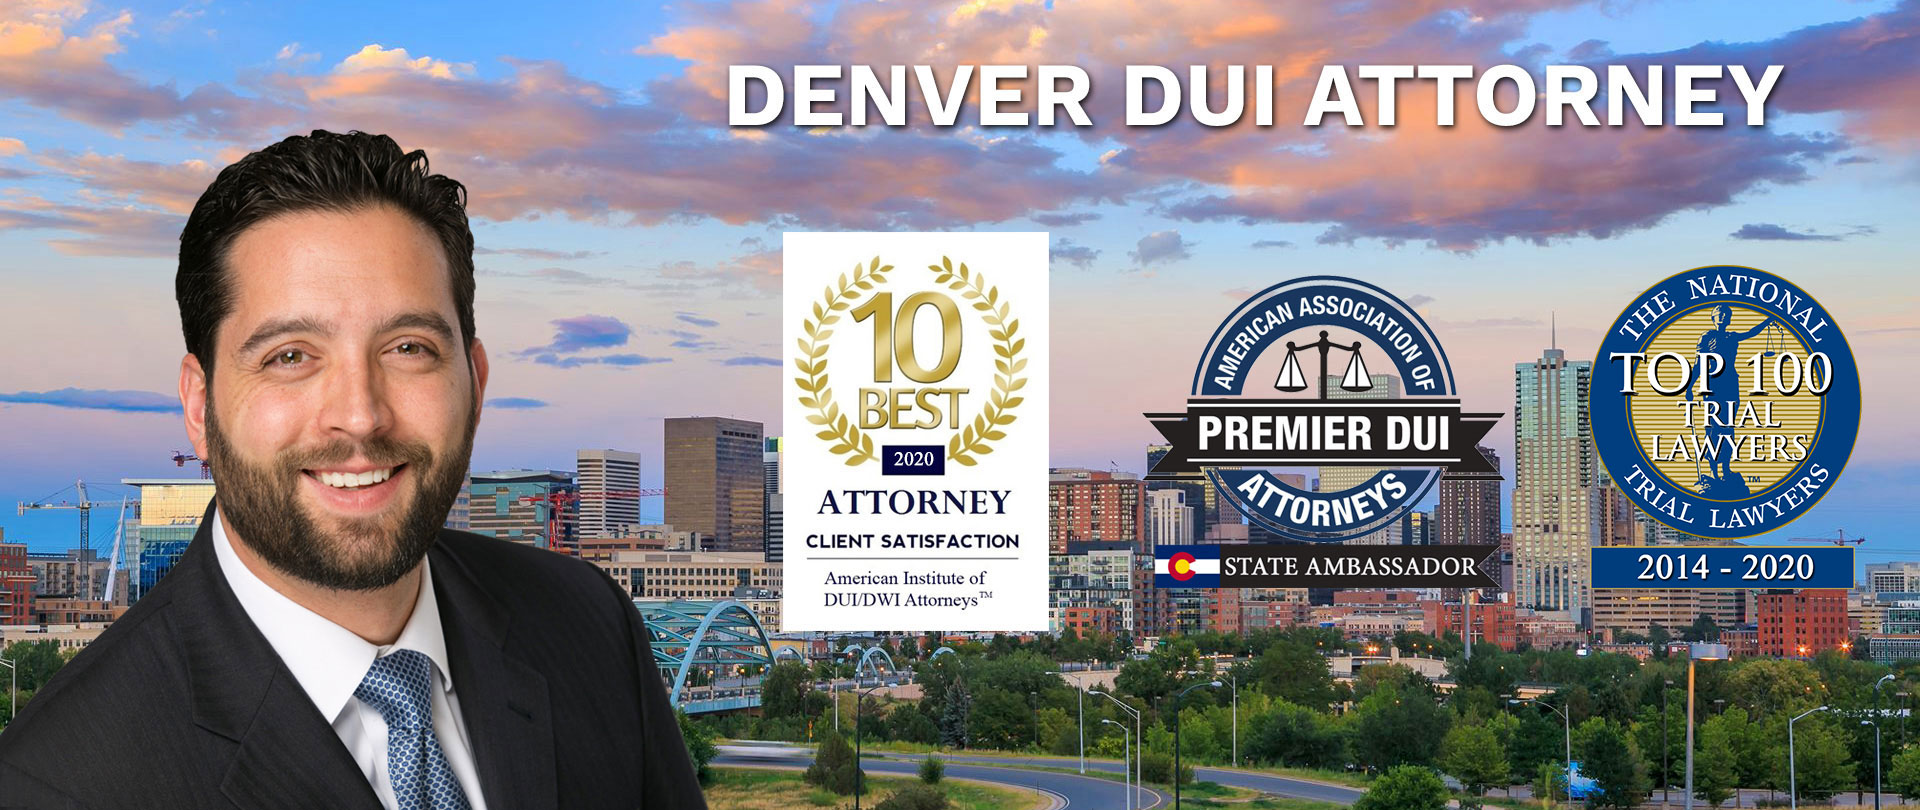 Denver Top DUI Attorney Banner